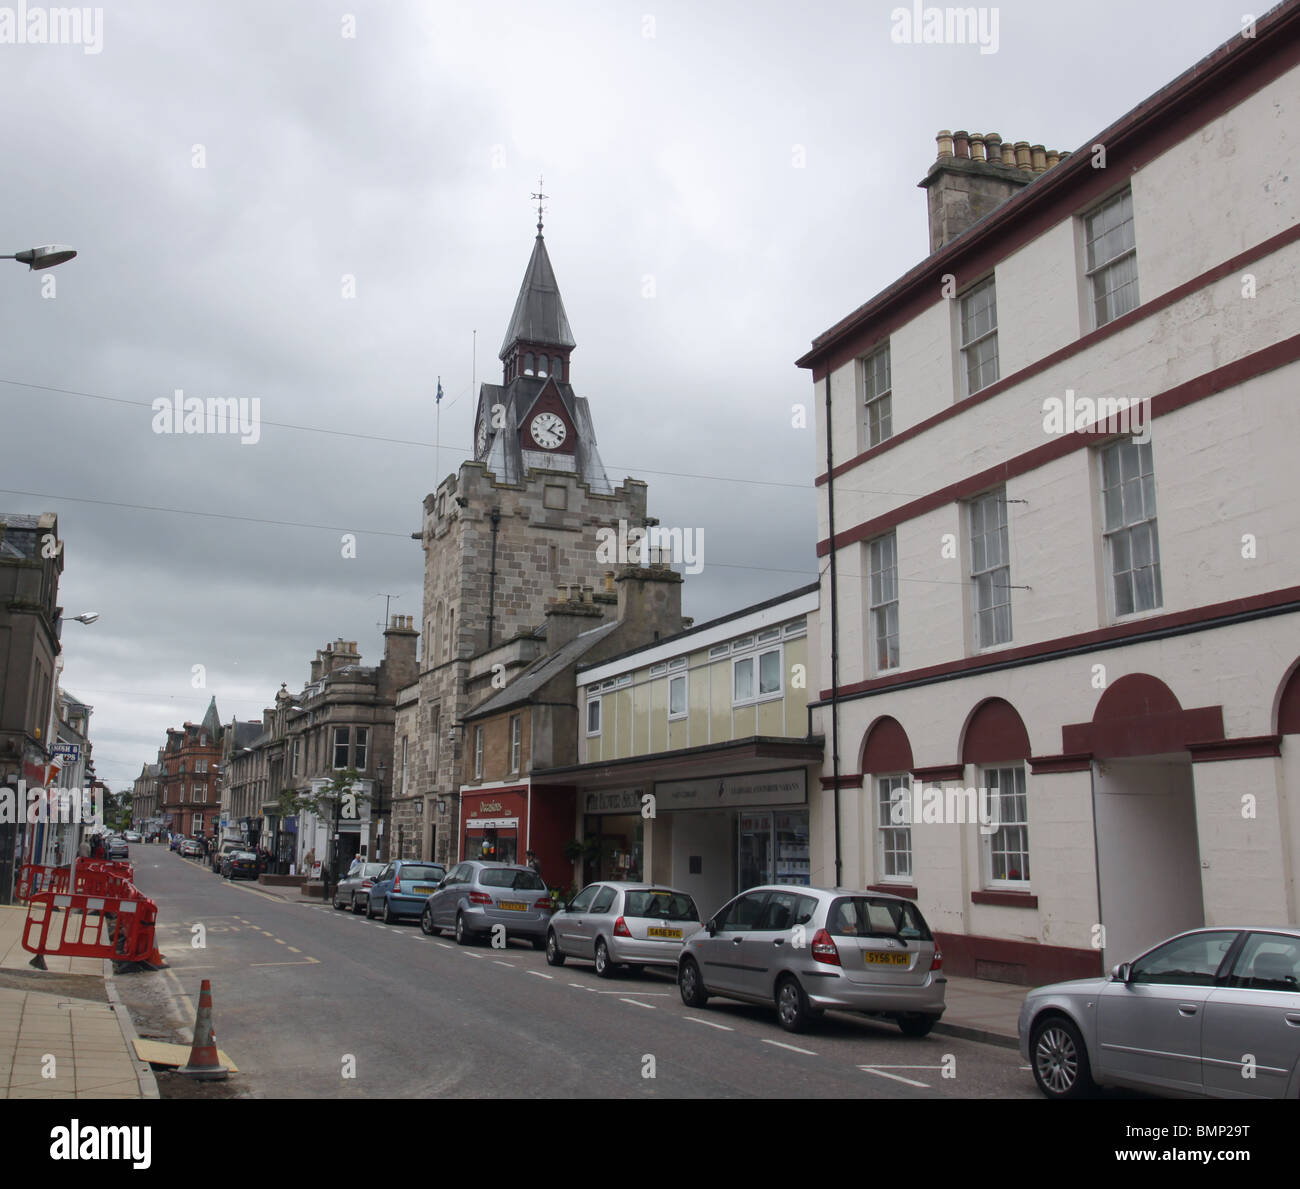 street scene with Courthouse clock tower Nairn Scotland  June 2010 - Stock Image